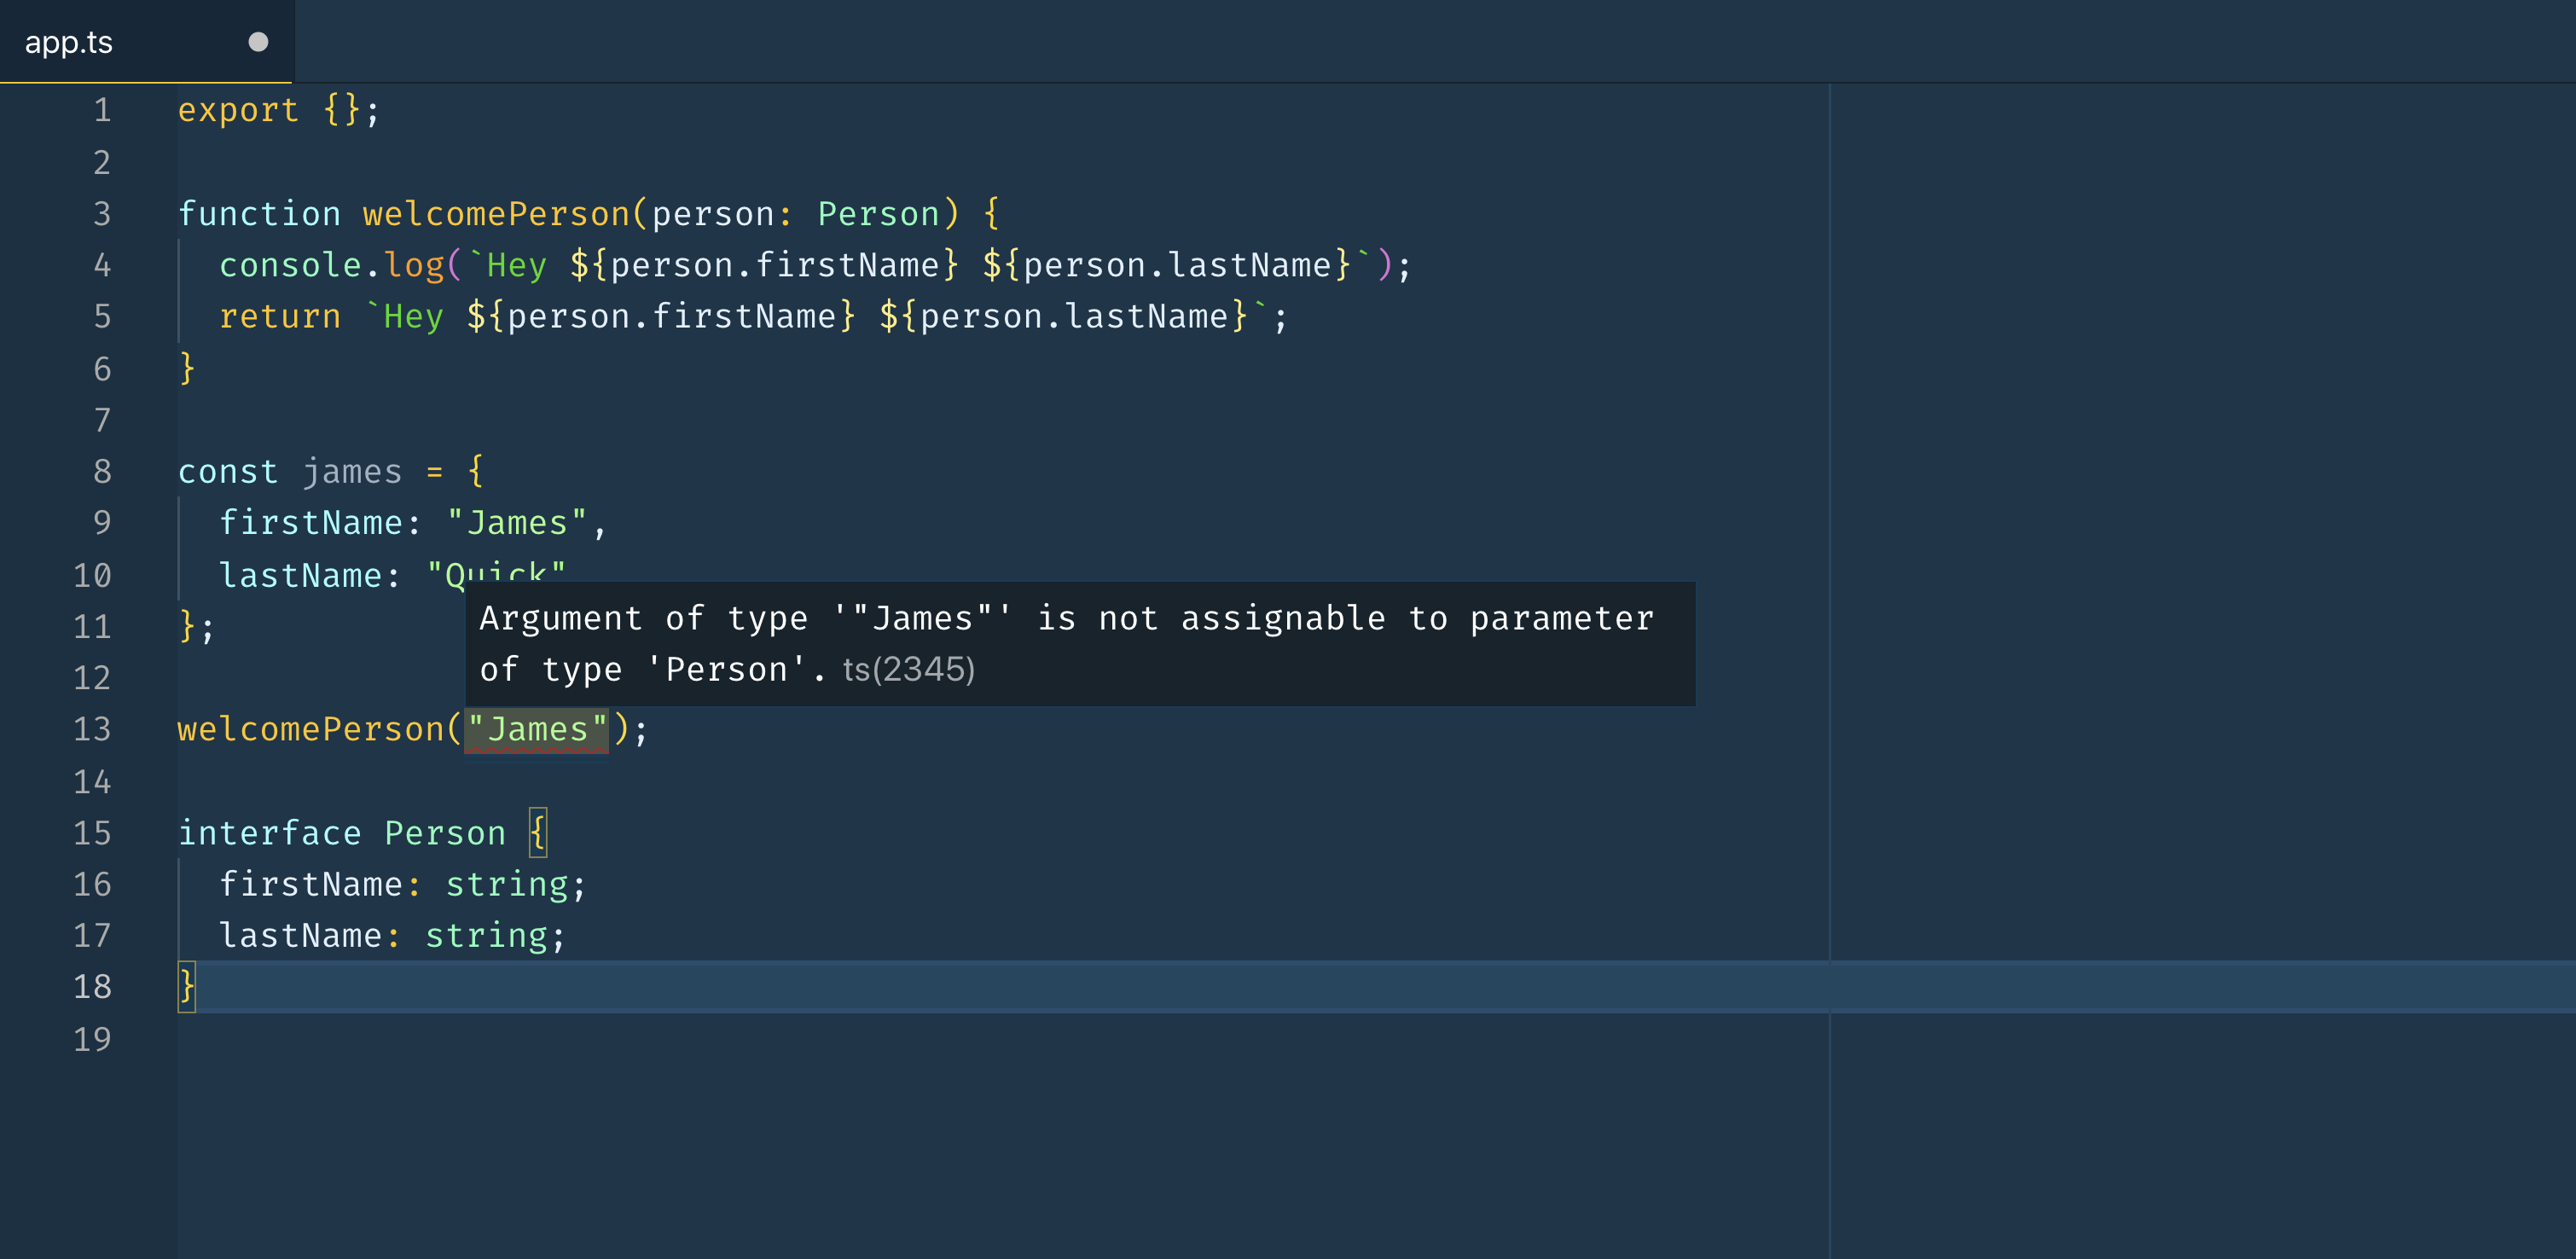 The code from the previous block in VS Code